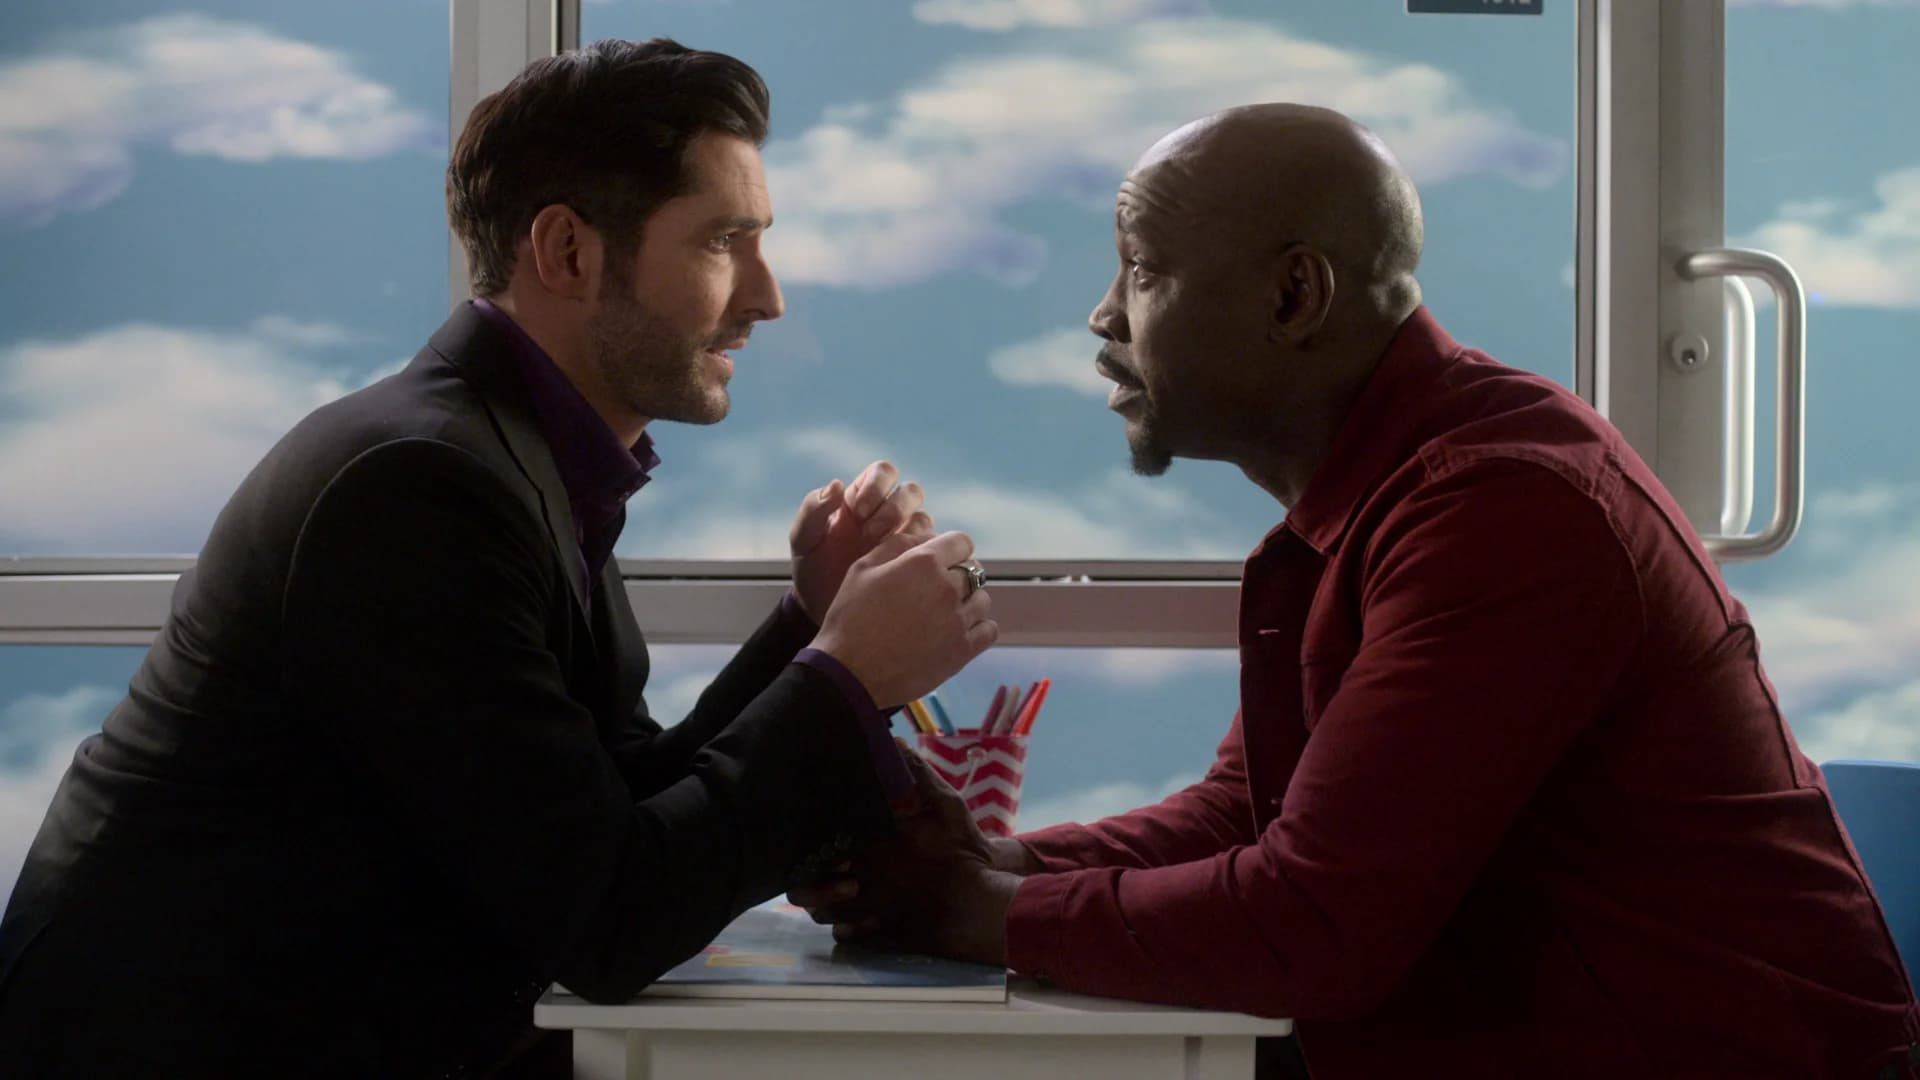 Lucifer Season 5 Part 2 Spoilers and Final Episode